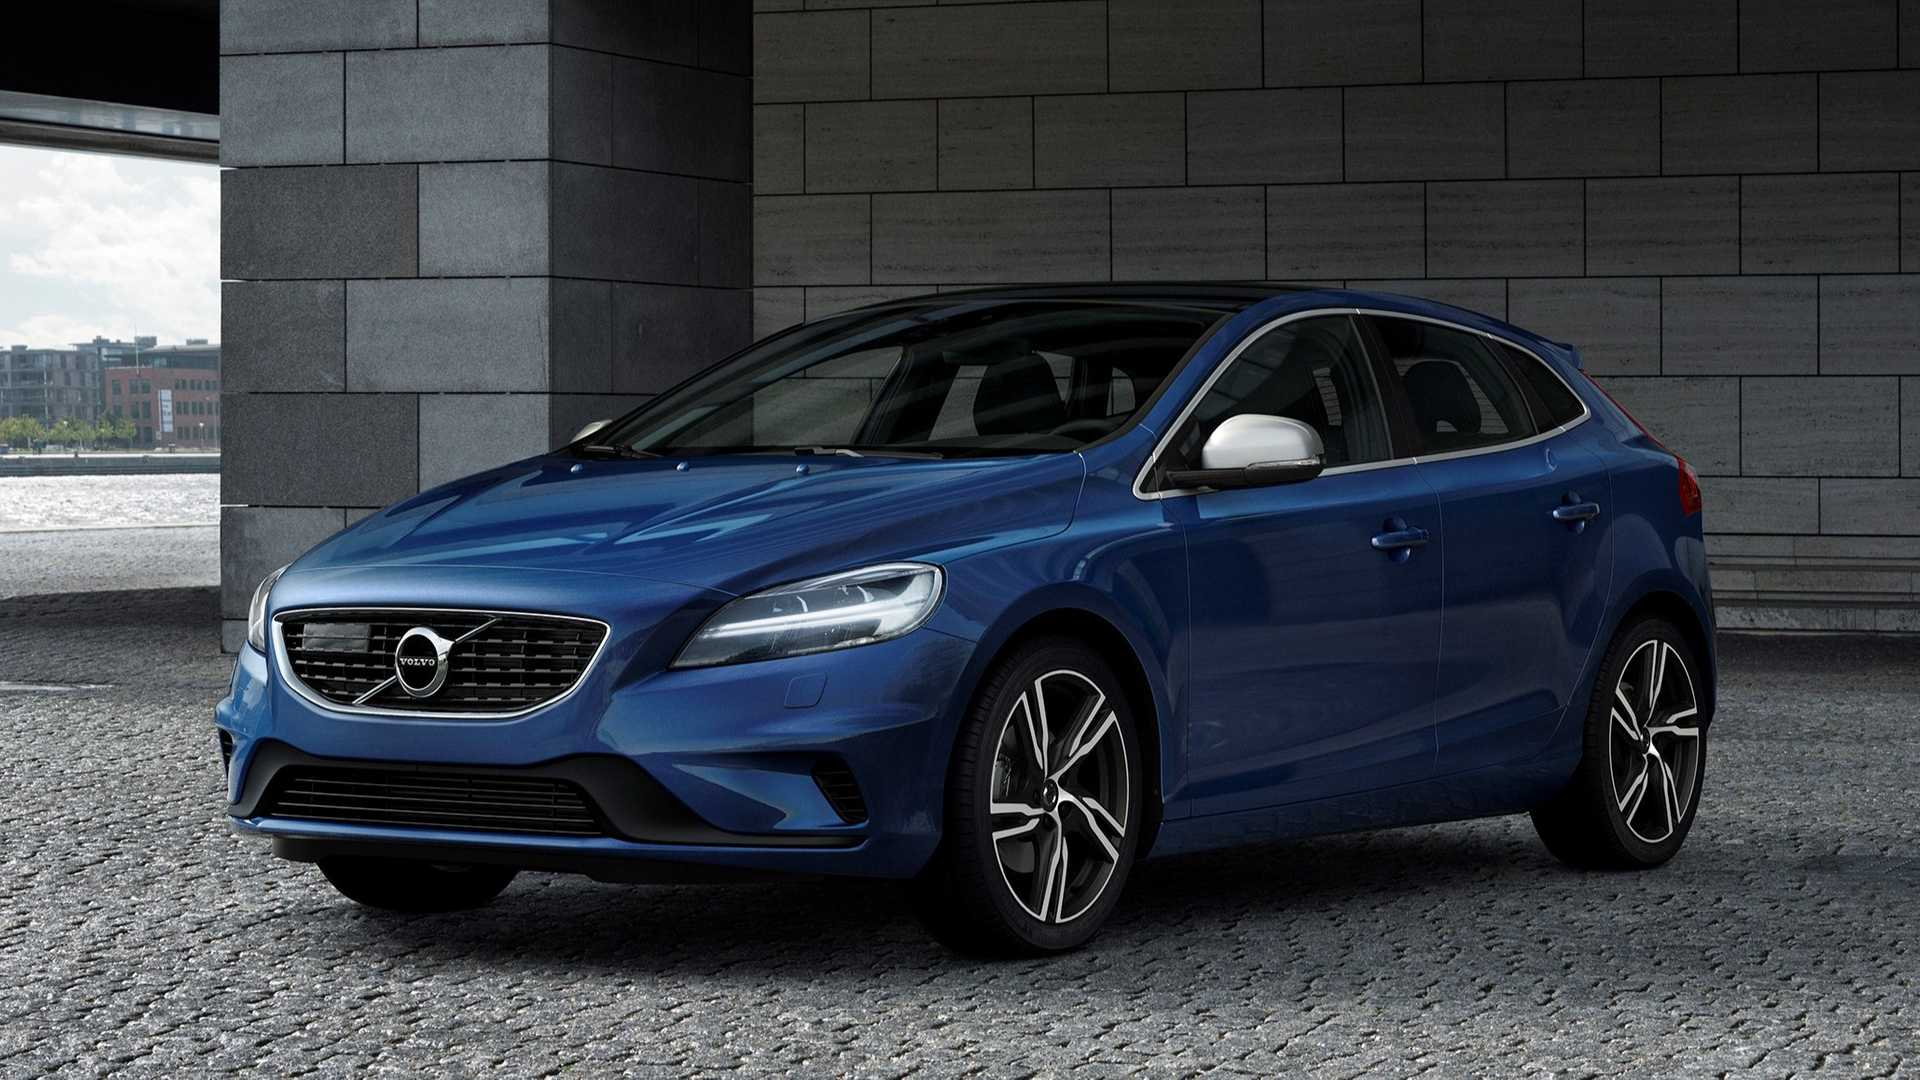 52 New V40 Volvo 2019 Pictures